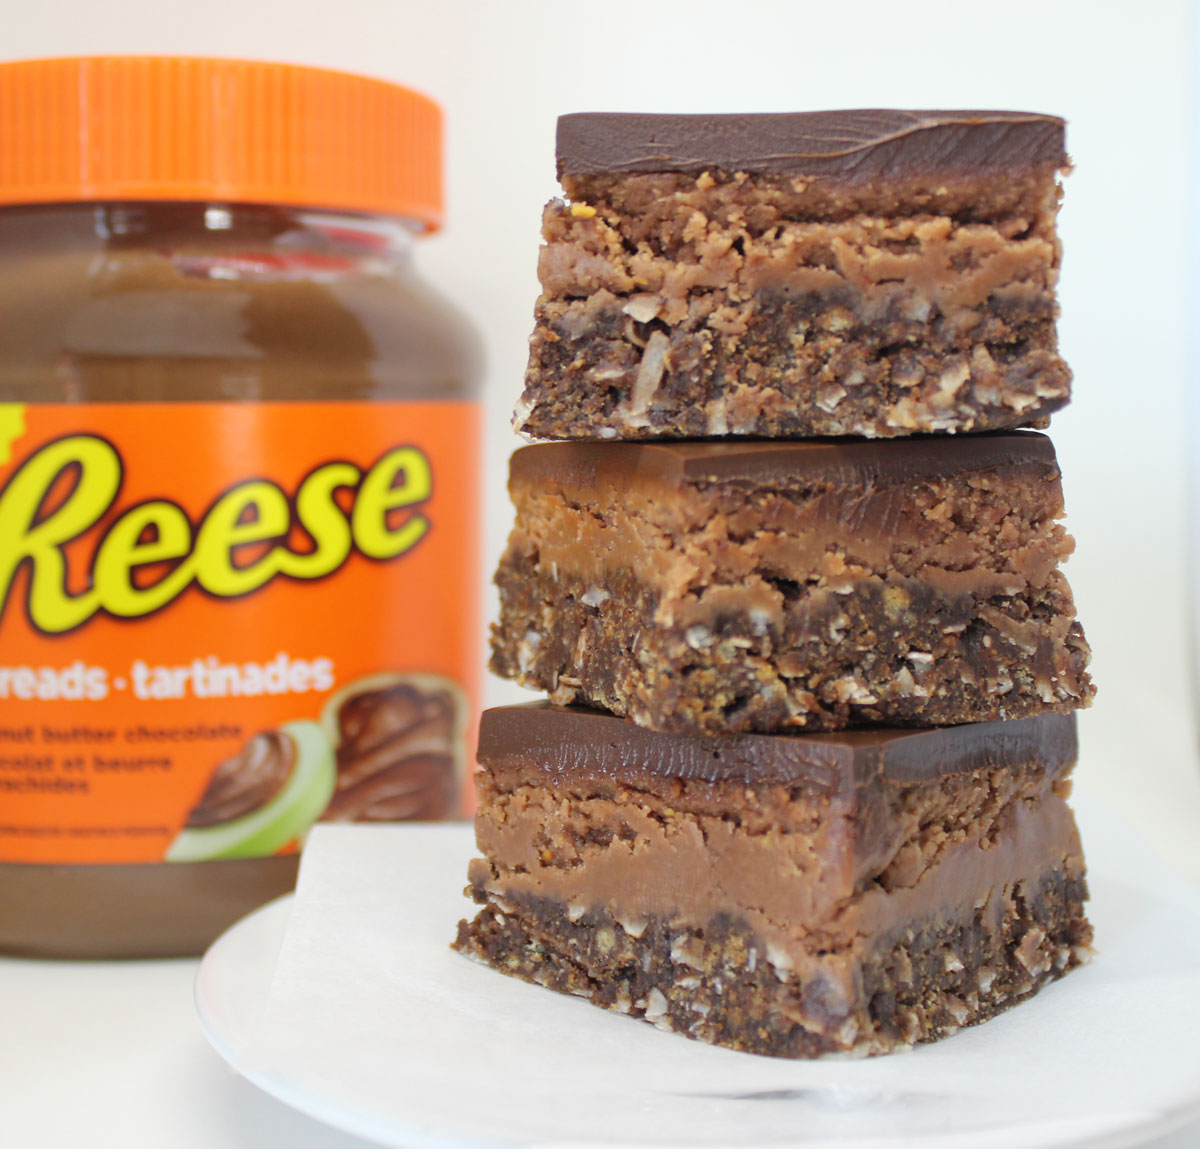 Reese's Peanut Butter Chocolate Nanaimo Bars